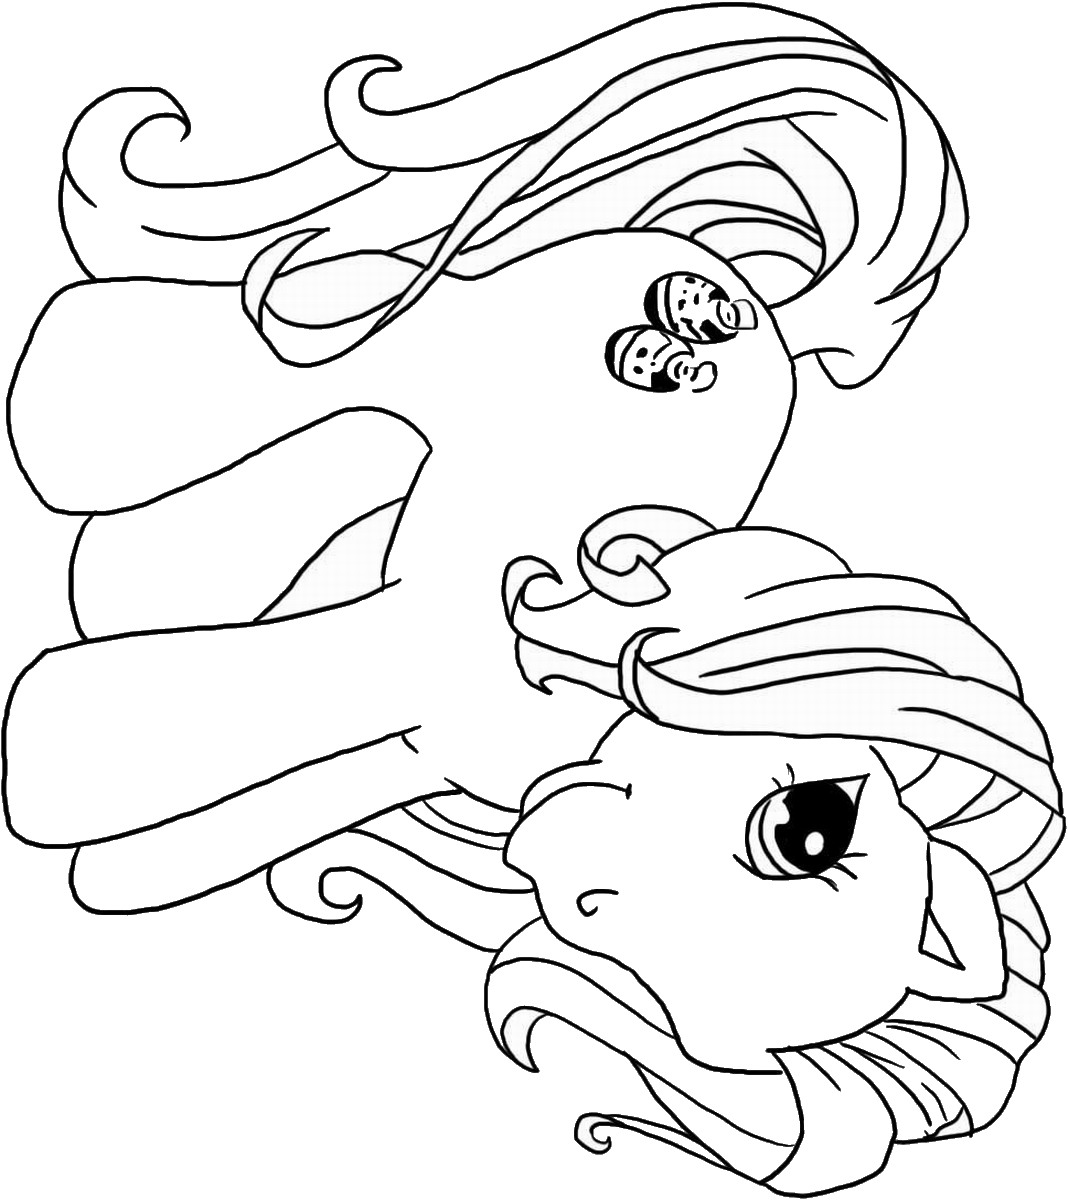 my little pony coloring pages my little pony coloring pages pony little pages my coloring